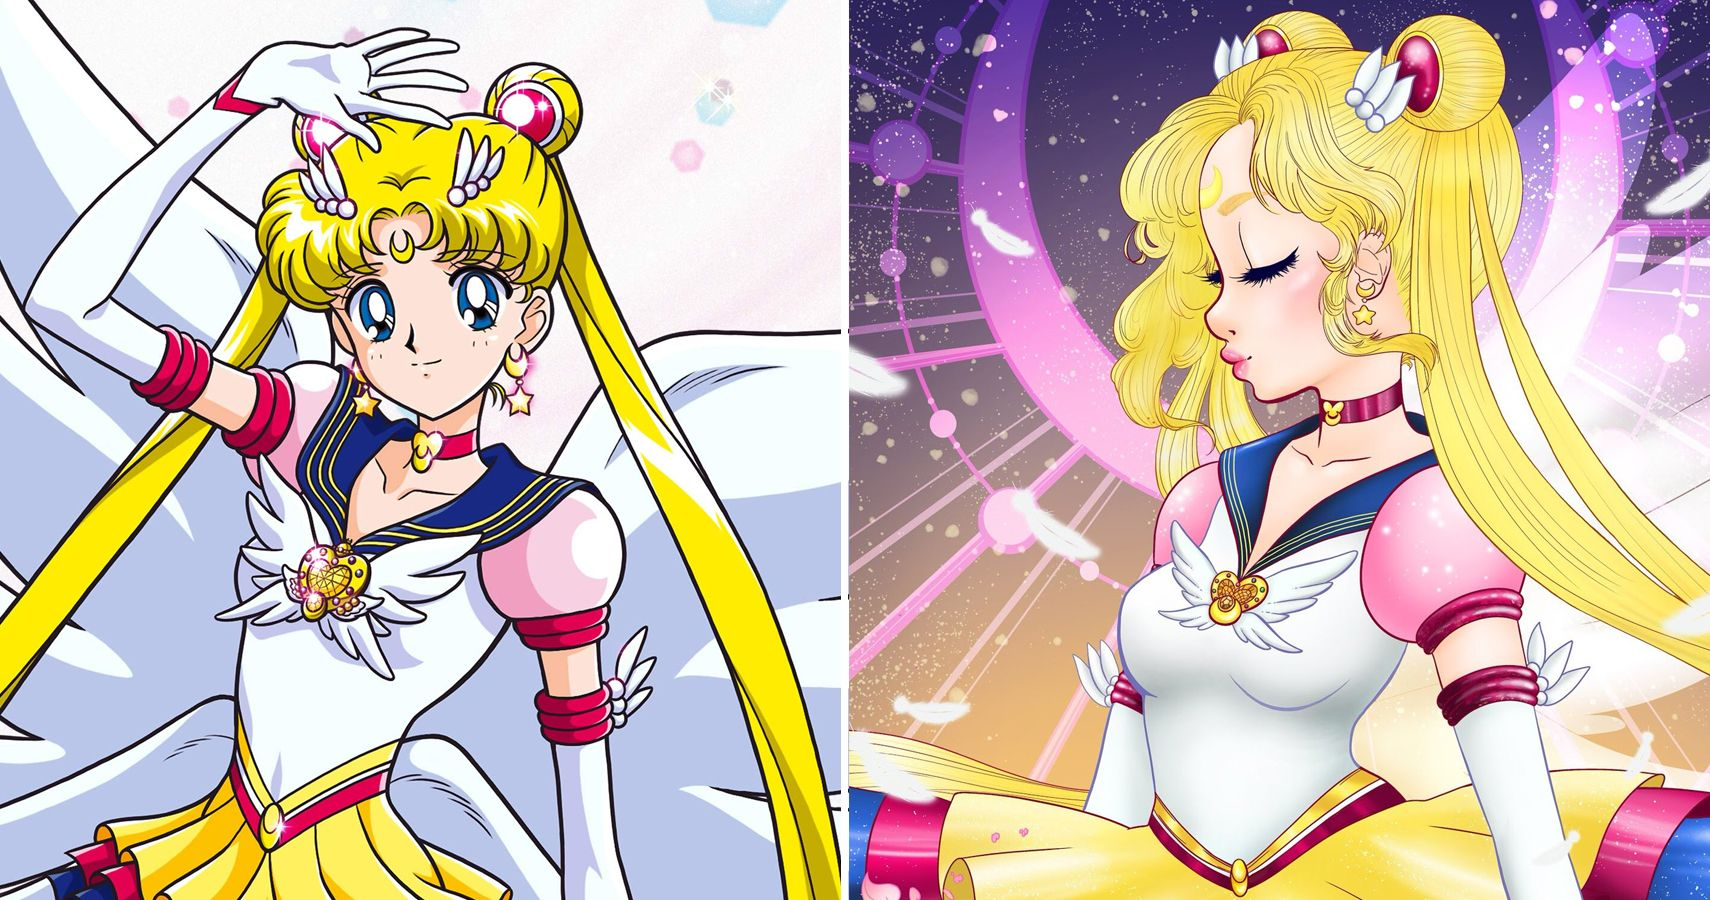 Sailor Moon 10 Sailor Moon Fan Art Pictures You Have To See